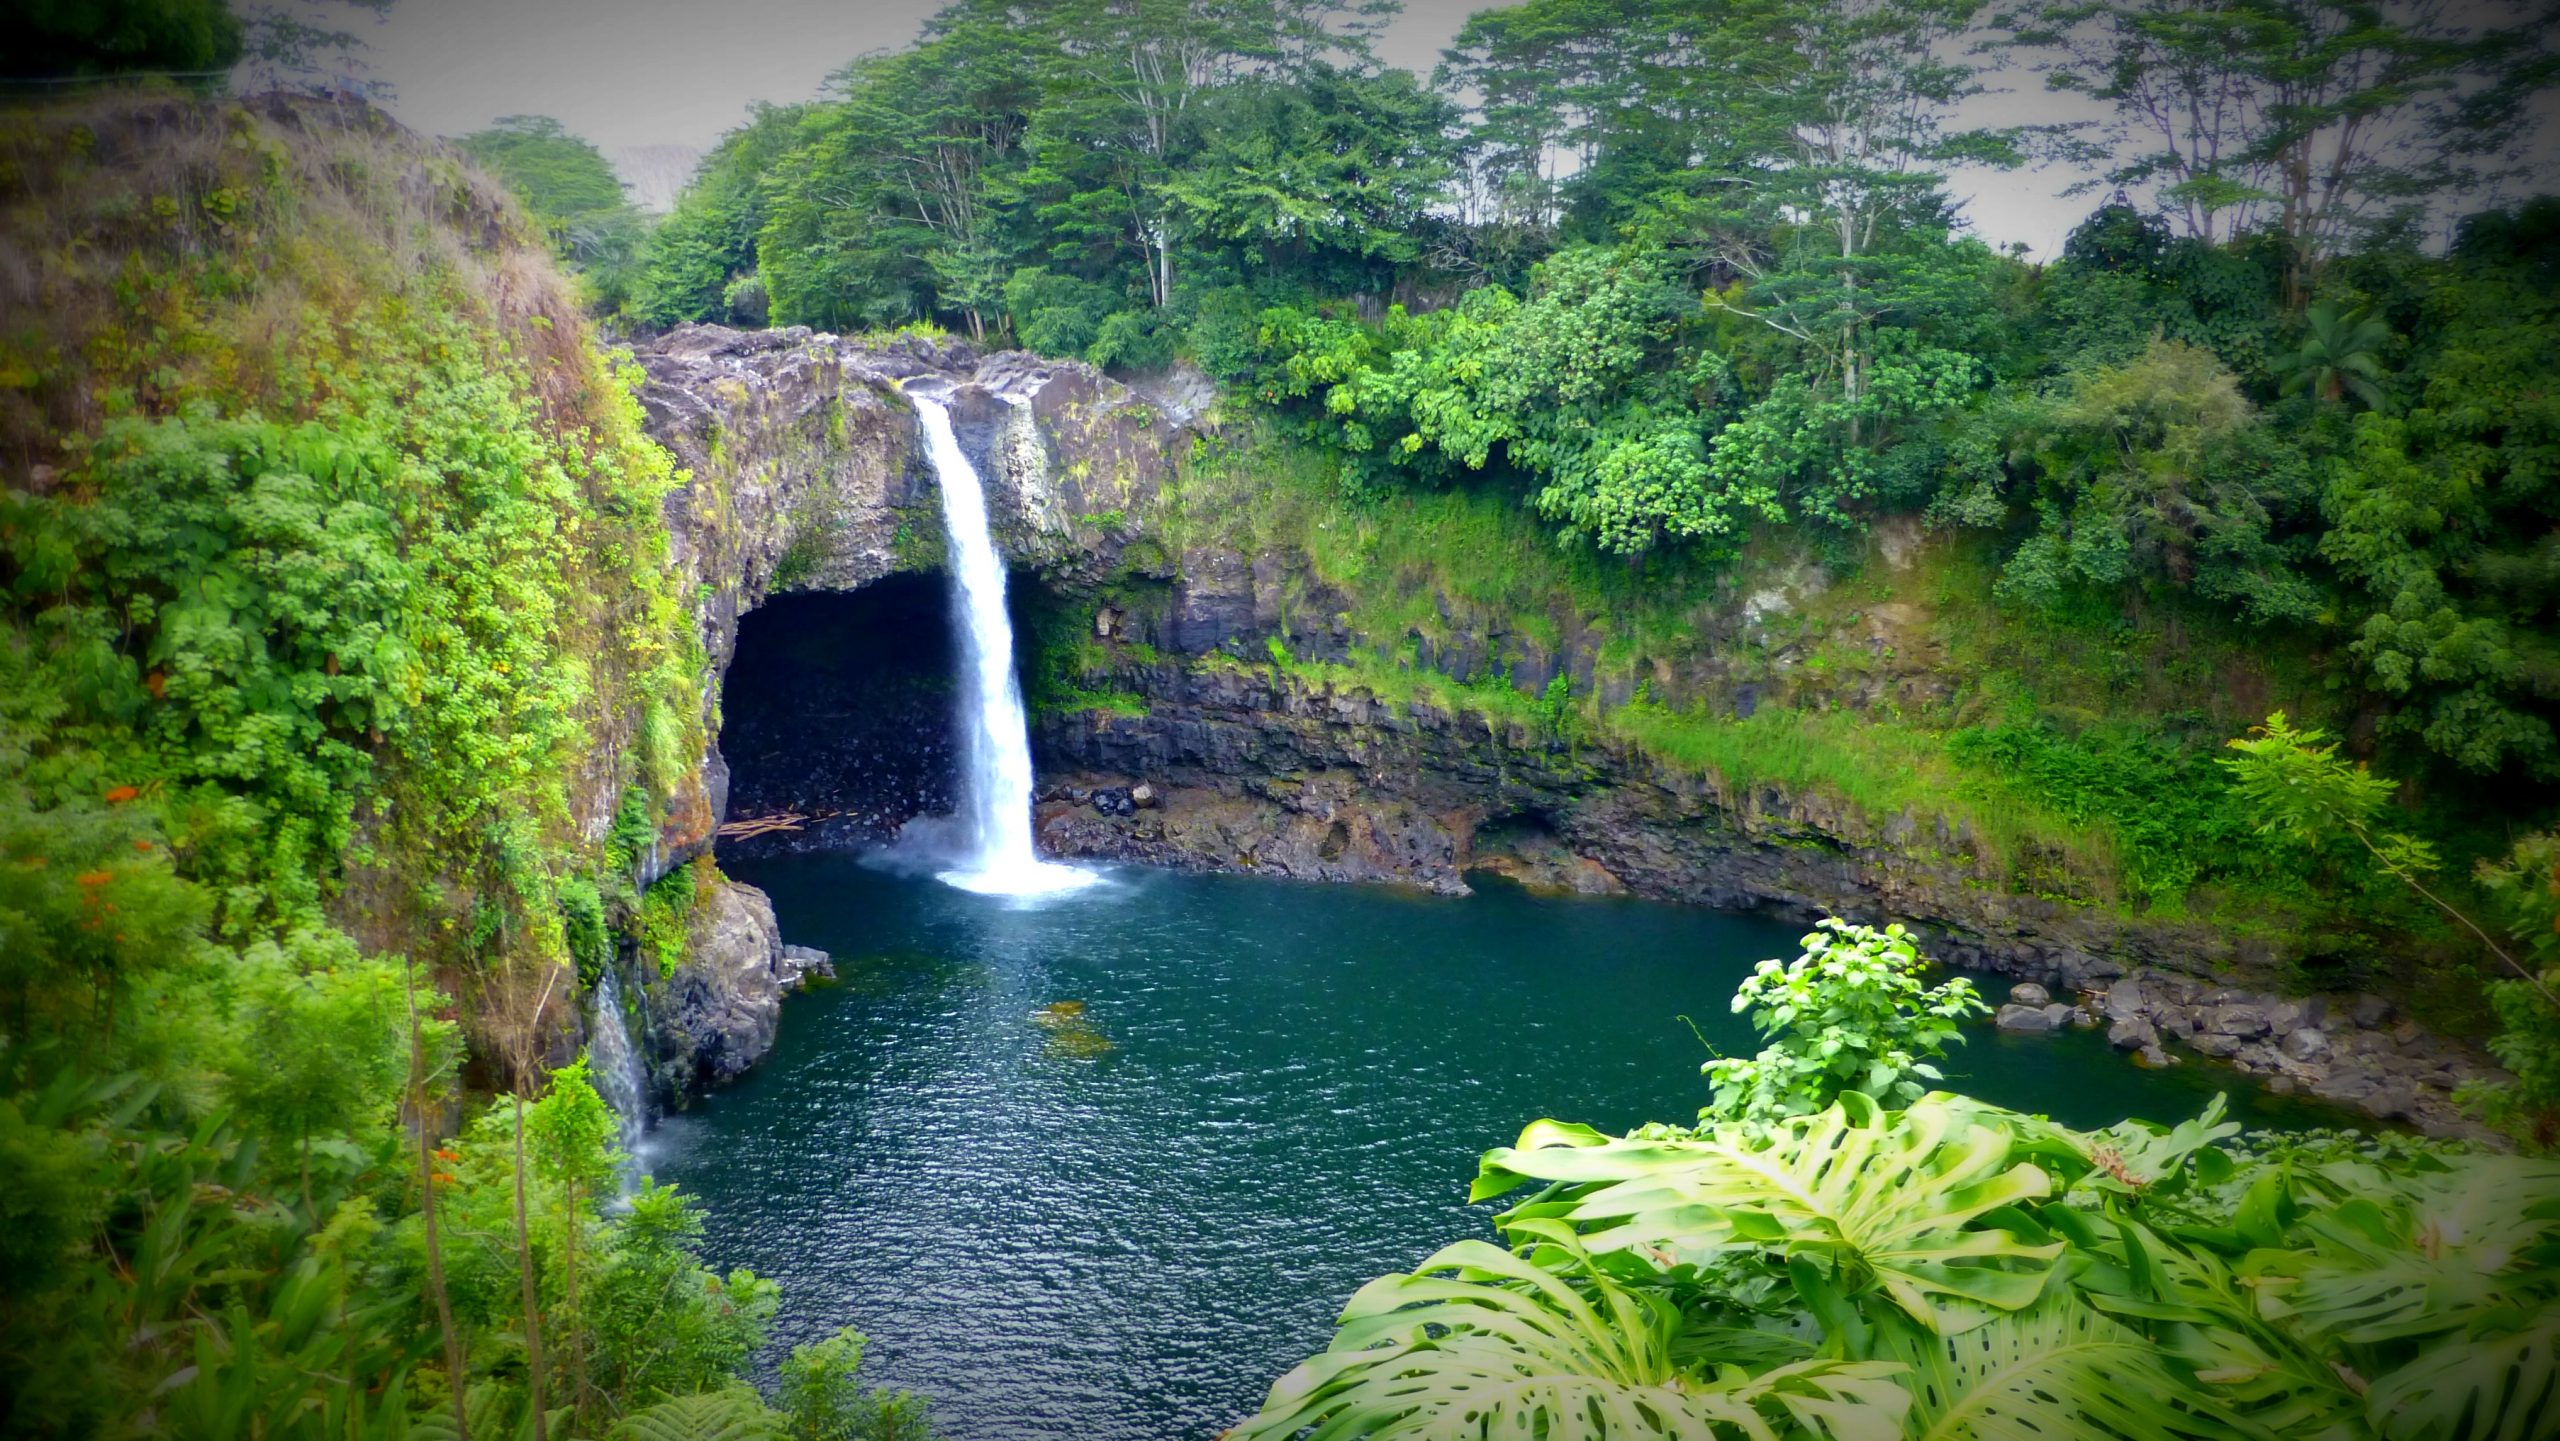 Big Island of Hawaii